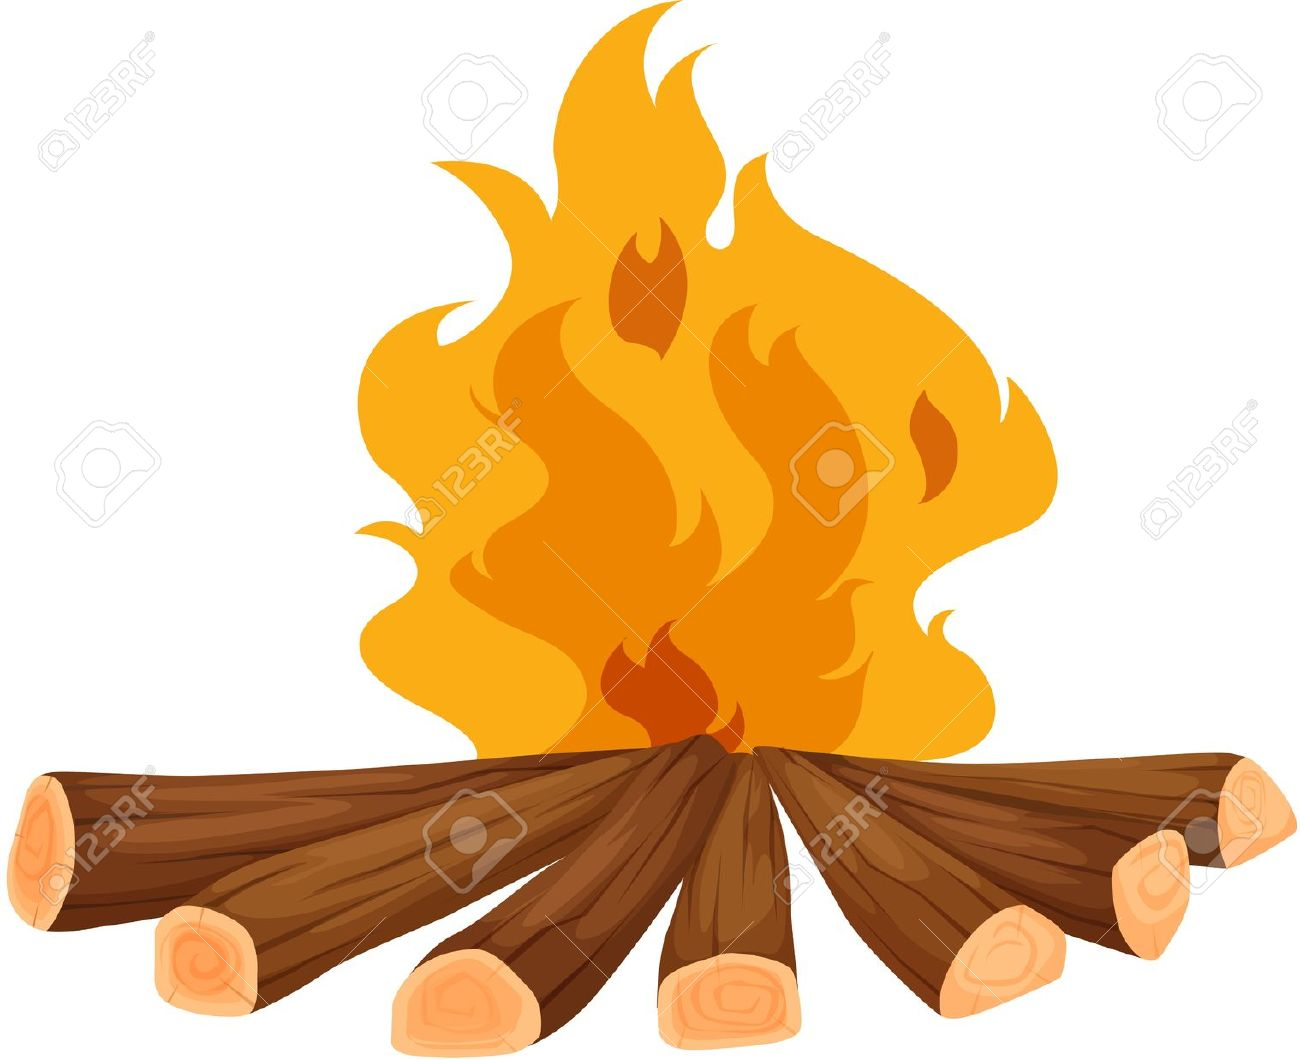 Fireplace clipart wood fire Zone Cliparts Wood wood fire